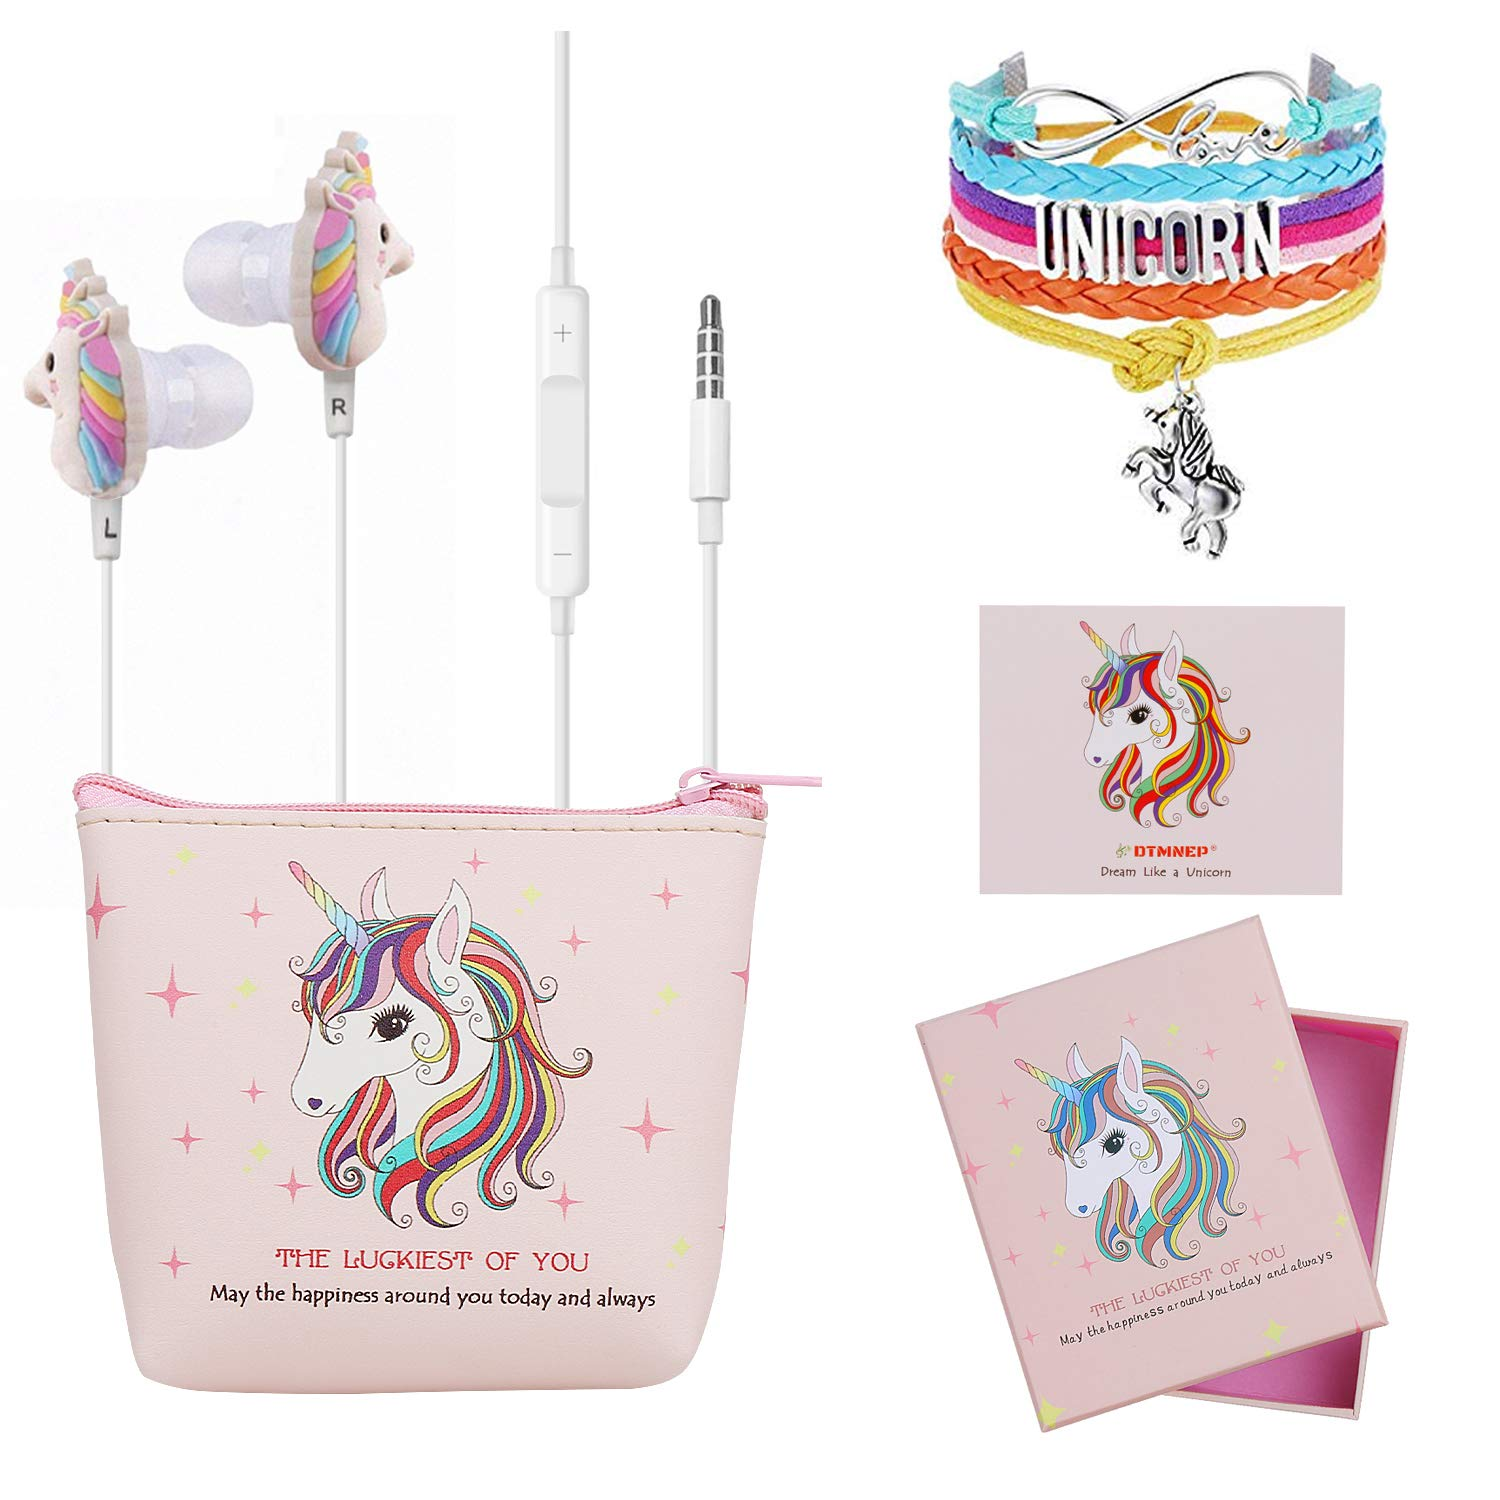 DTMNEP Unicorn Gifts for Girls – Earbuds Earphones for Kids Compatible with Apple Android with Rainbow Unicorn Bracelet Wristband Headphone Case Gift Card Gift Box, and Back to School Supply for Kids